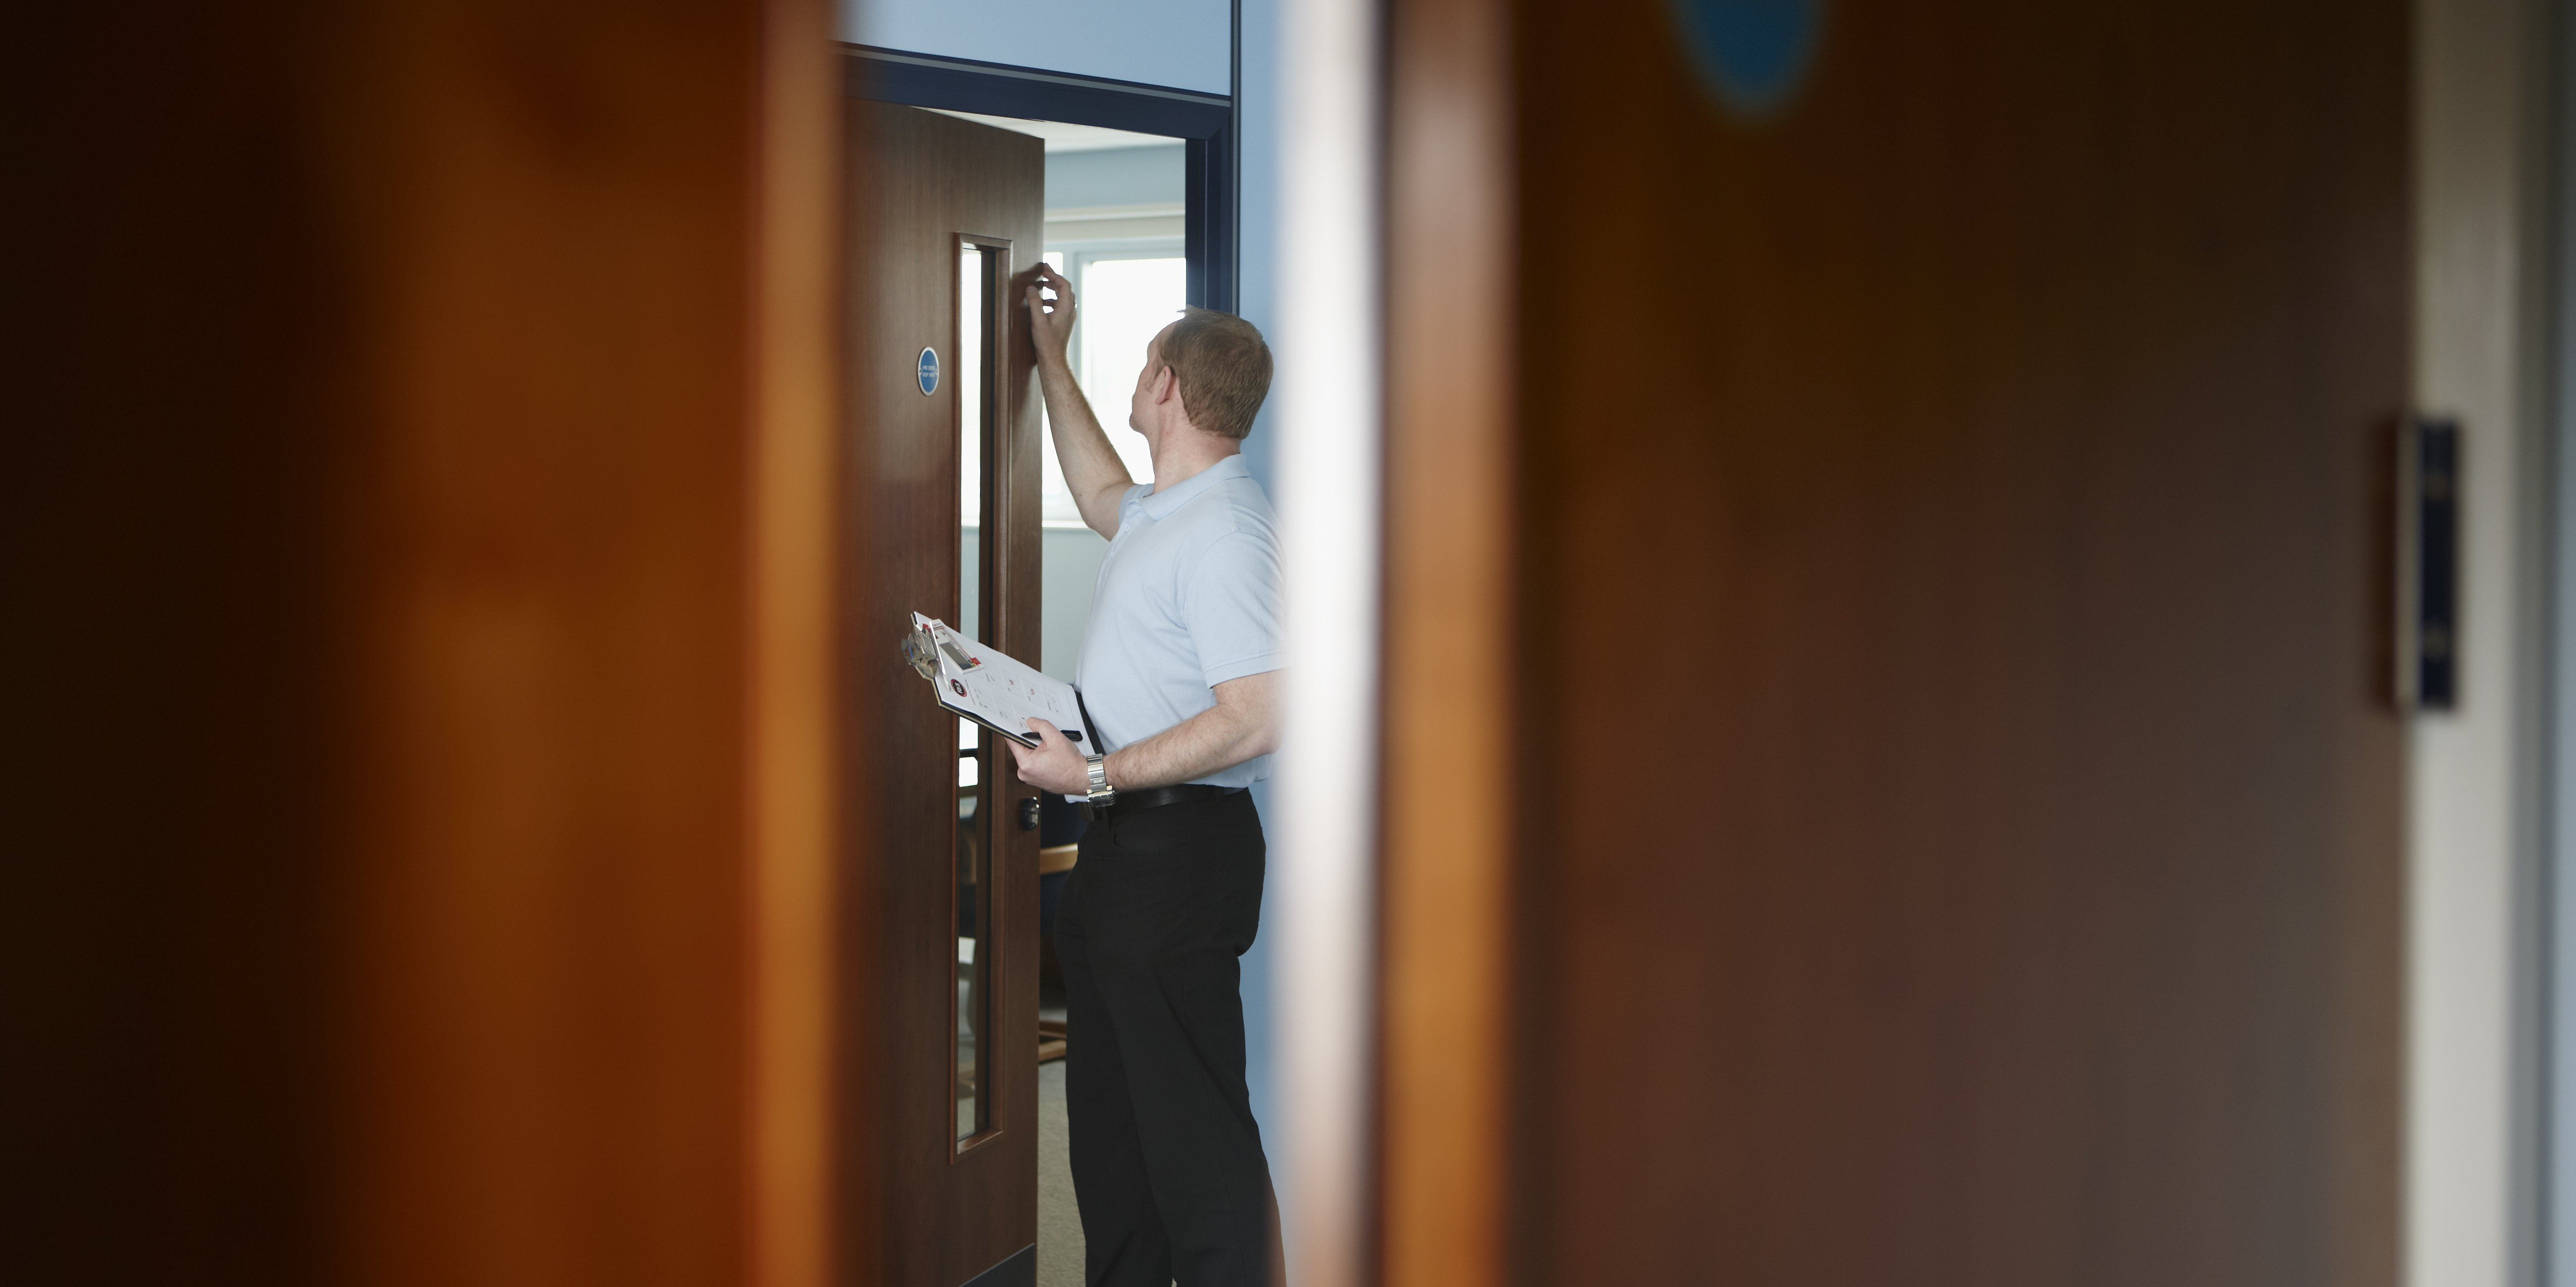 Fire Safety Doors : Majority of renters 'left in dark on basic fire safety